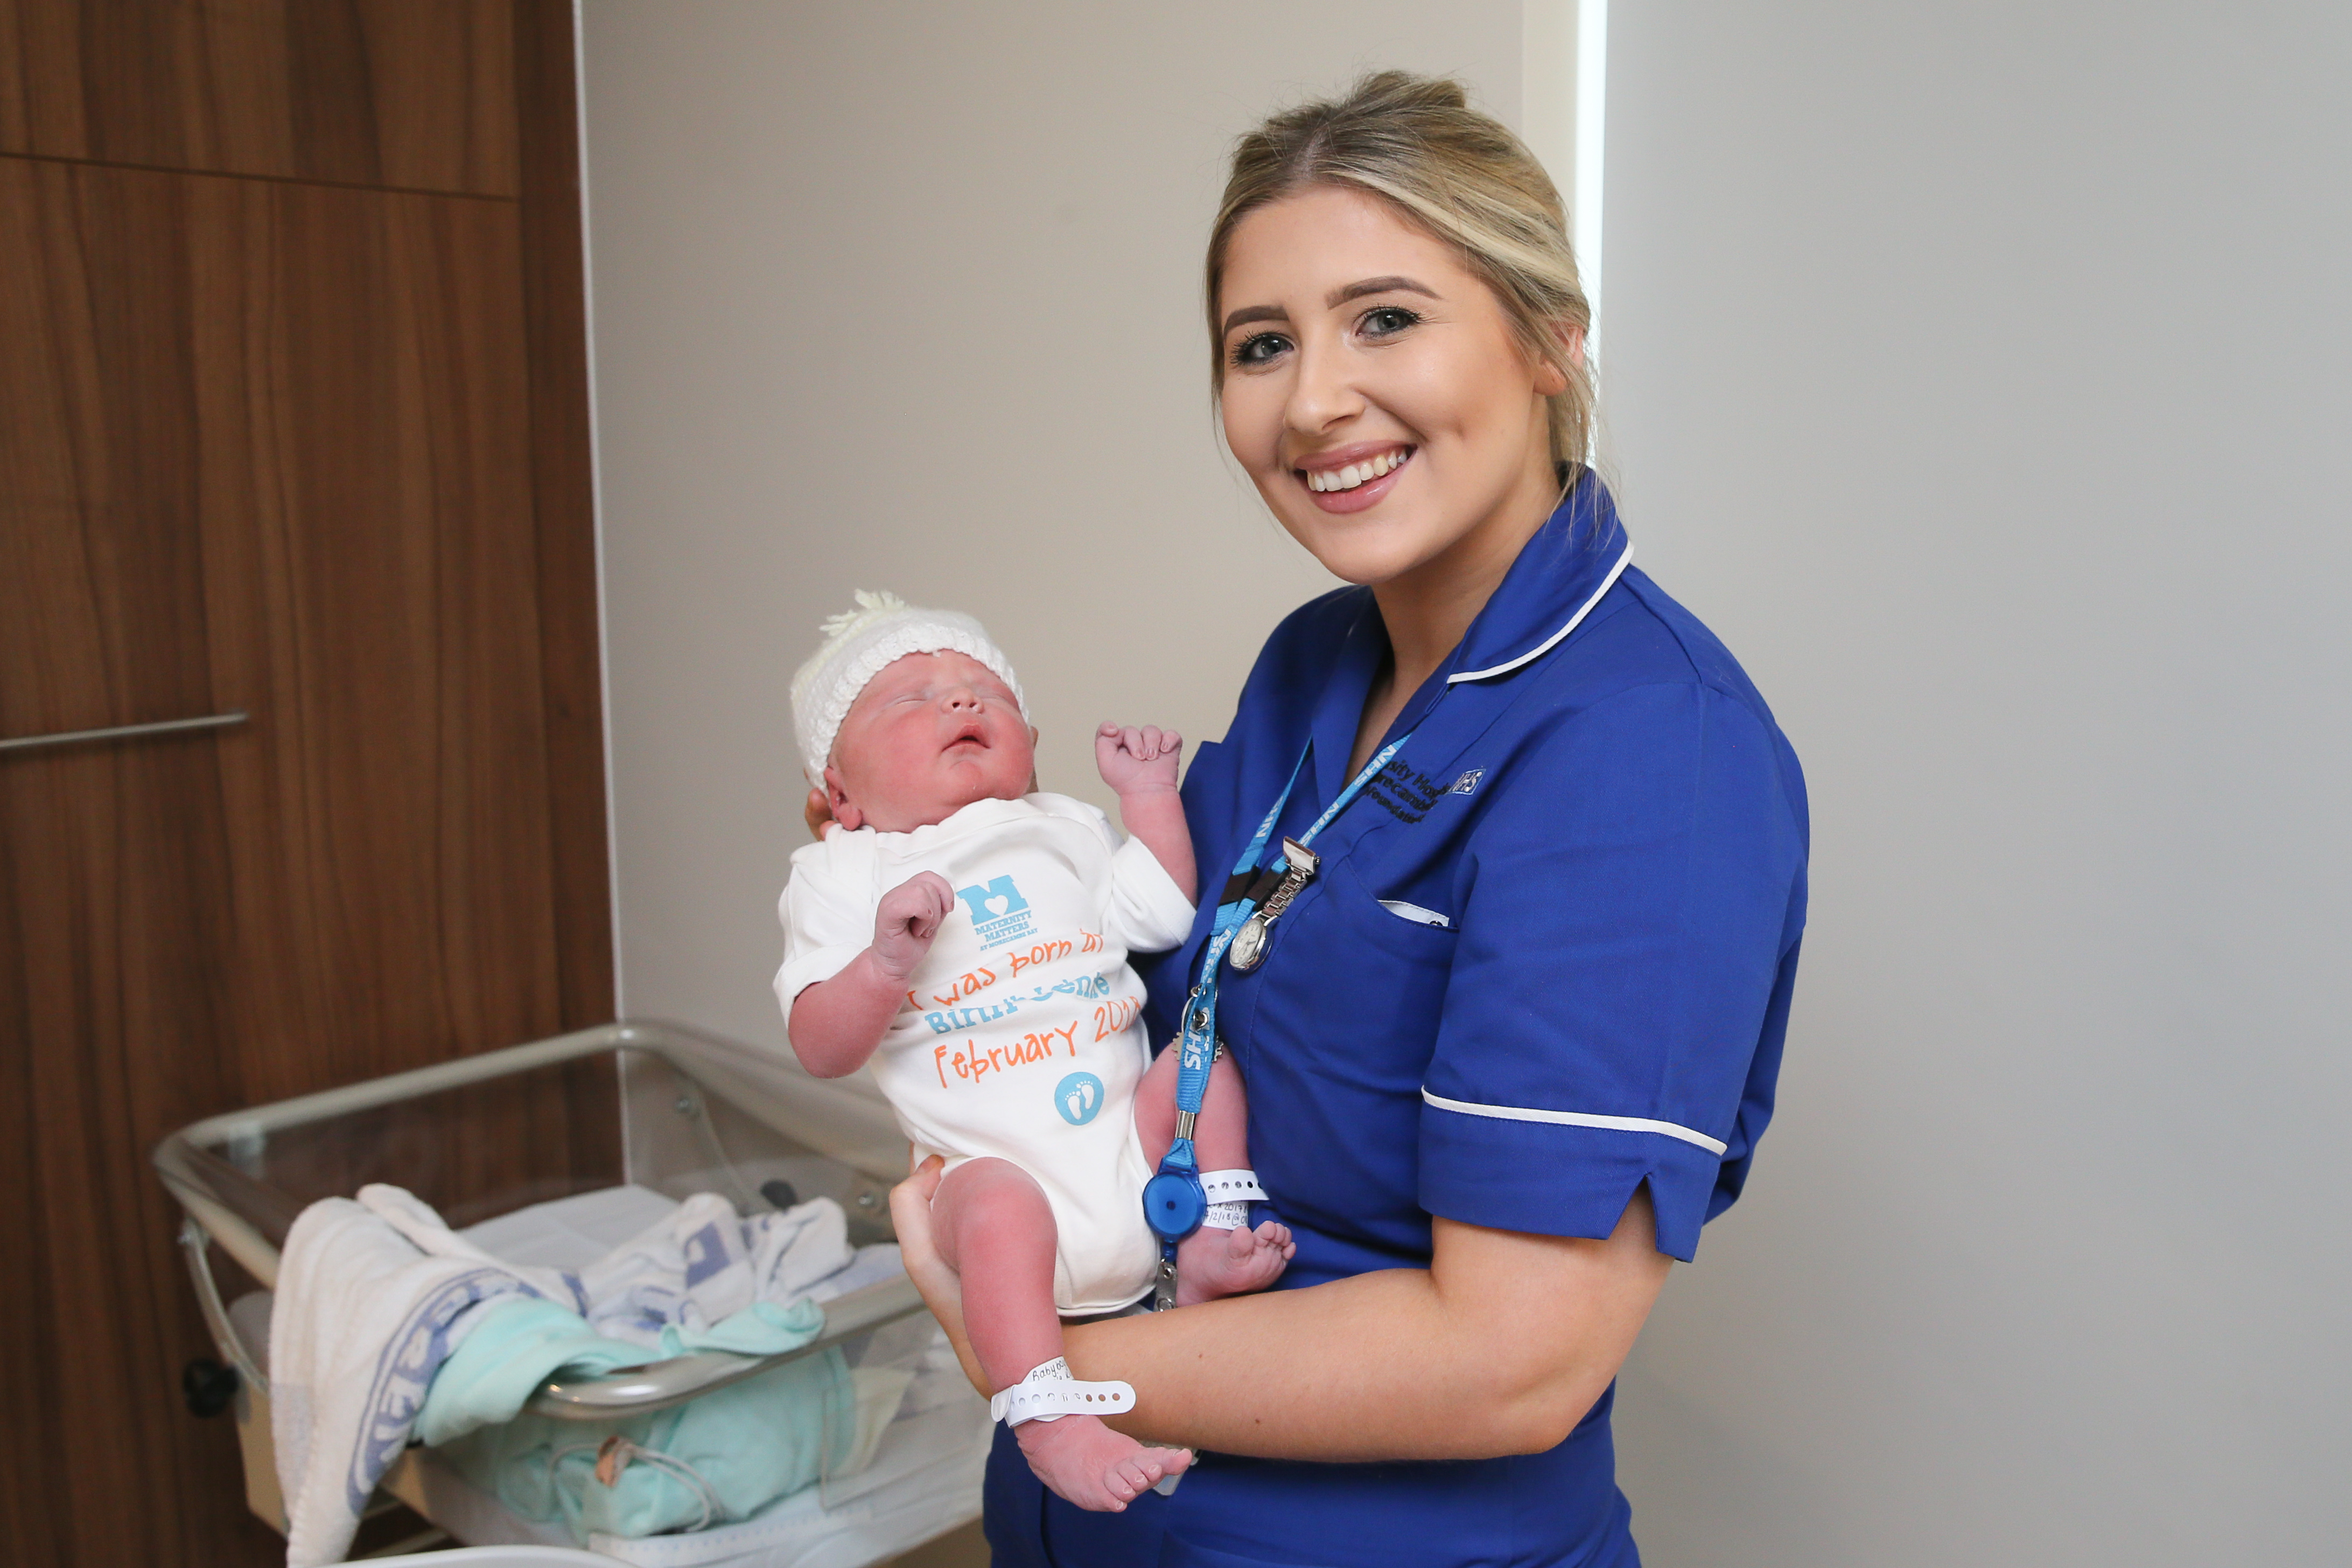 Barrow midwife supporting women across Morecambe Bay through new Facebook group featured image